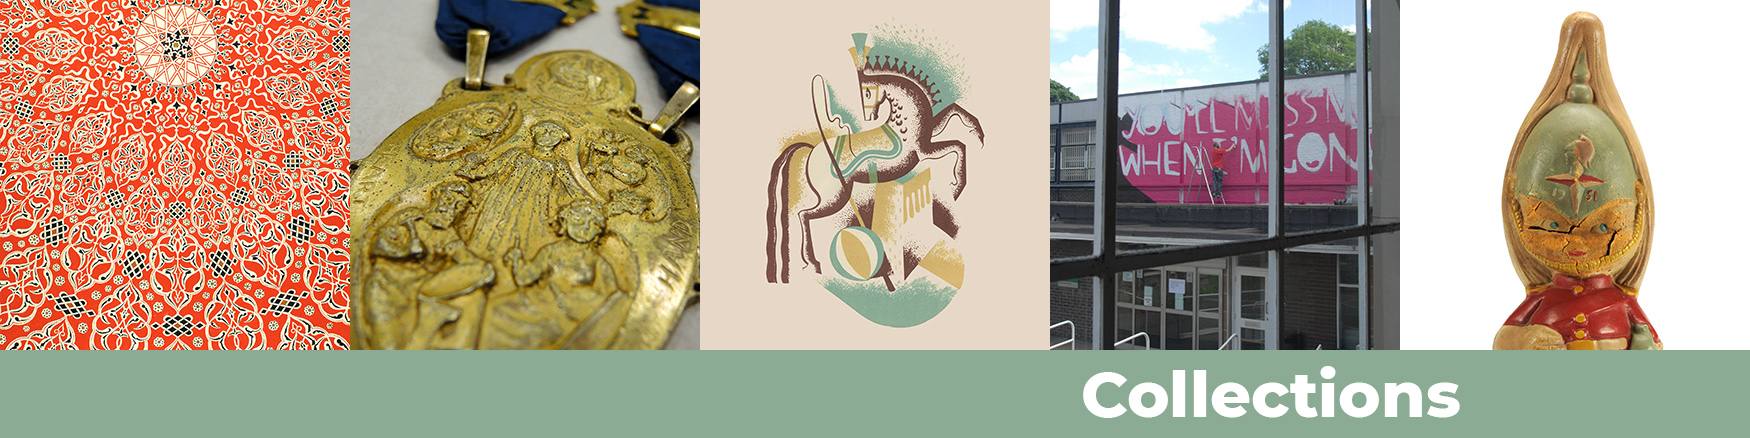 Banner image for the Collections page. Five images - a page form the Grammar of Ornament, Sheffield Guild of Craftsmen Medal, Student graphic, Psalter Lane Graffiti, Festival of Britain, Soldier..